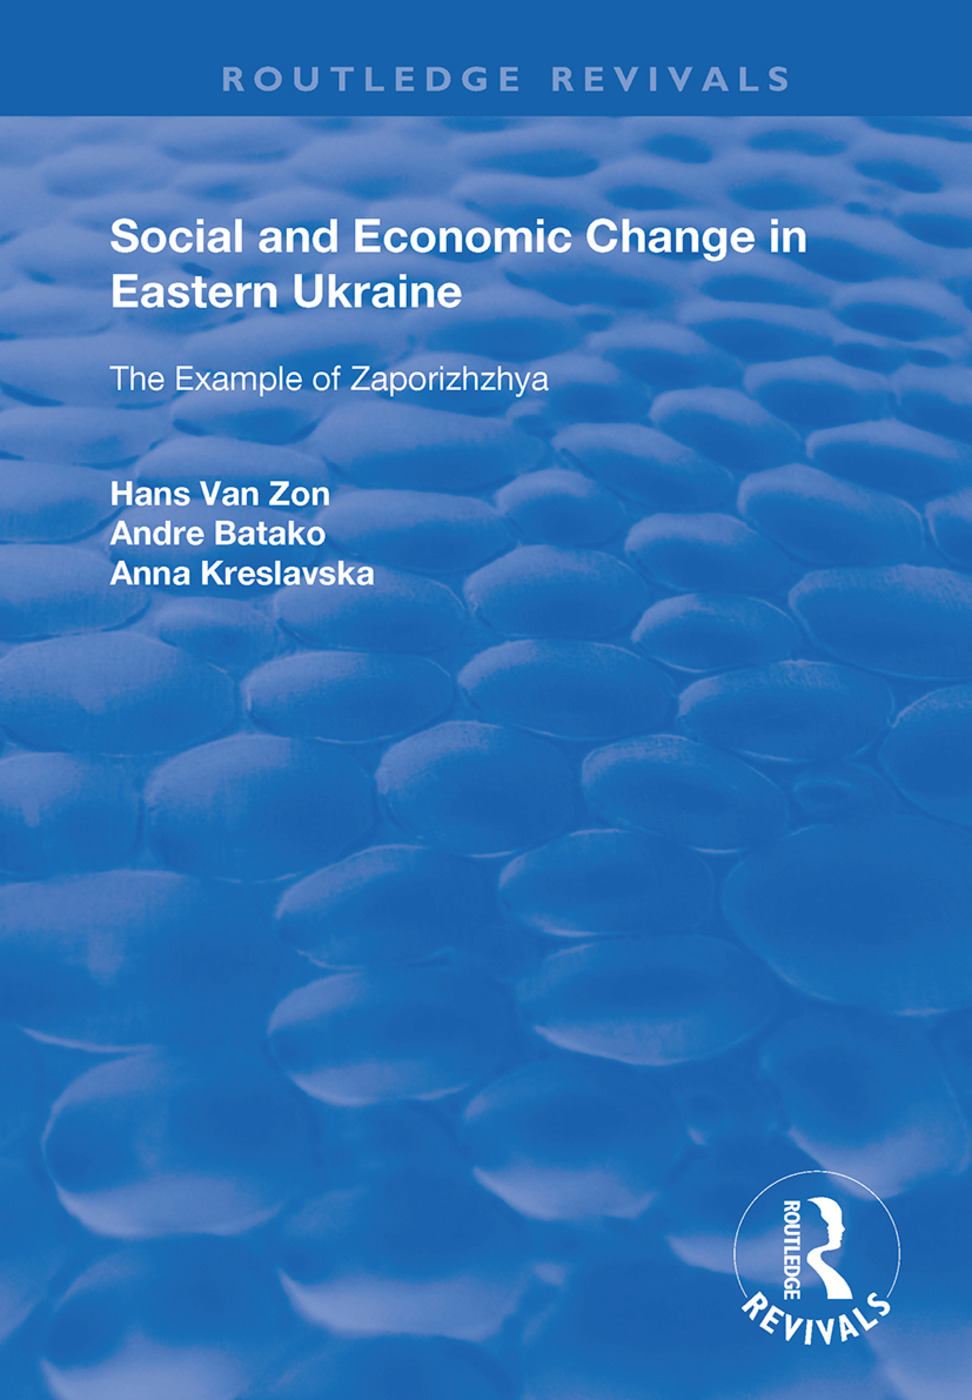 Social and Economic Change in Eastern Ukraine: The Example of Zaporizhzhia, 1st Edition (Paperback) book cover